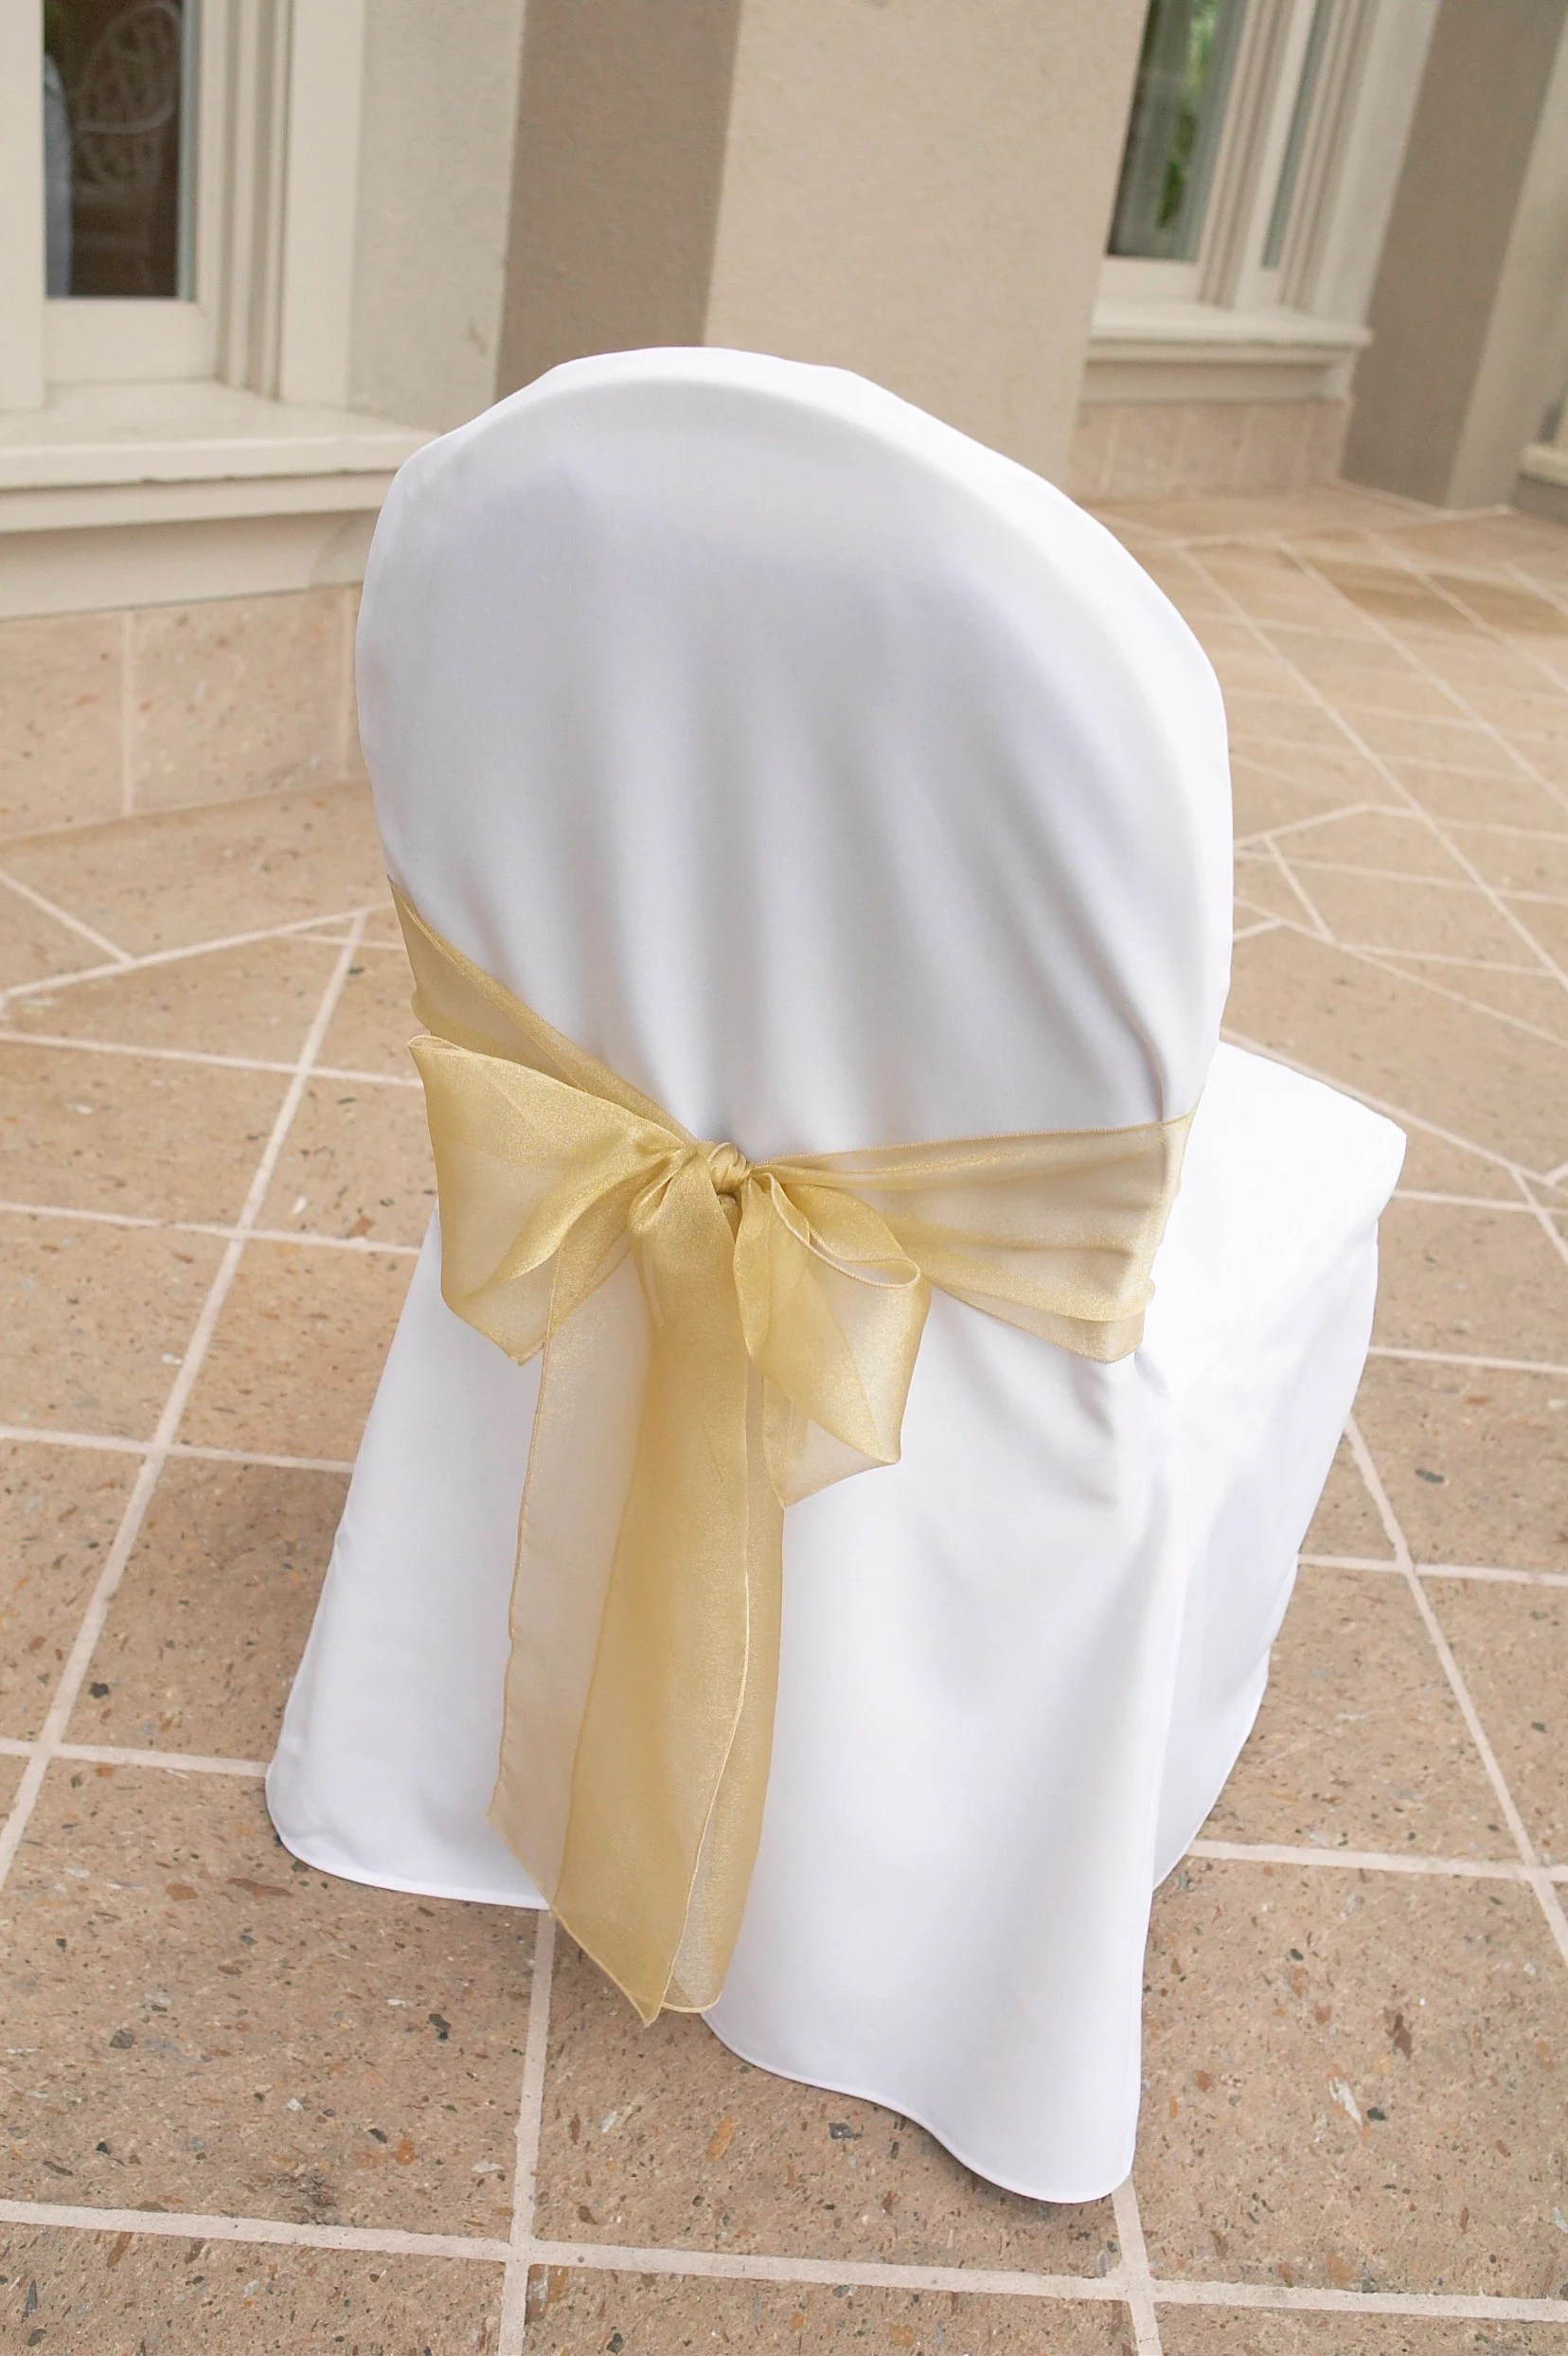 Used Banquet Chairs 100 Ivory Chair Cover For Clearance Wedding Chair Cover Unique Chair Cover Banquet Chair Cover